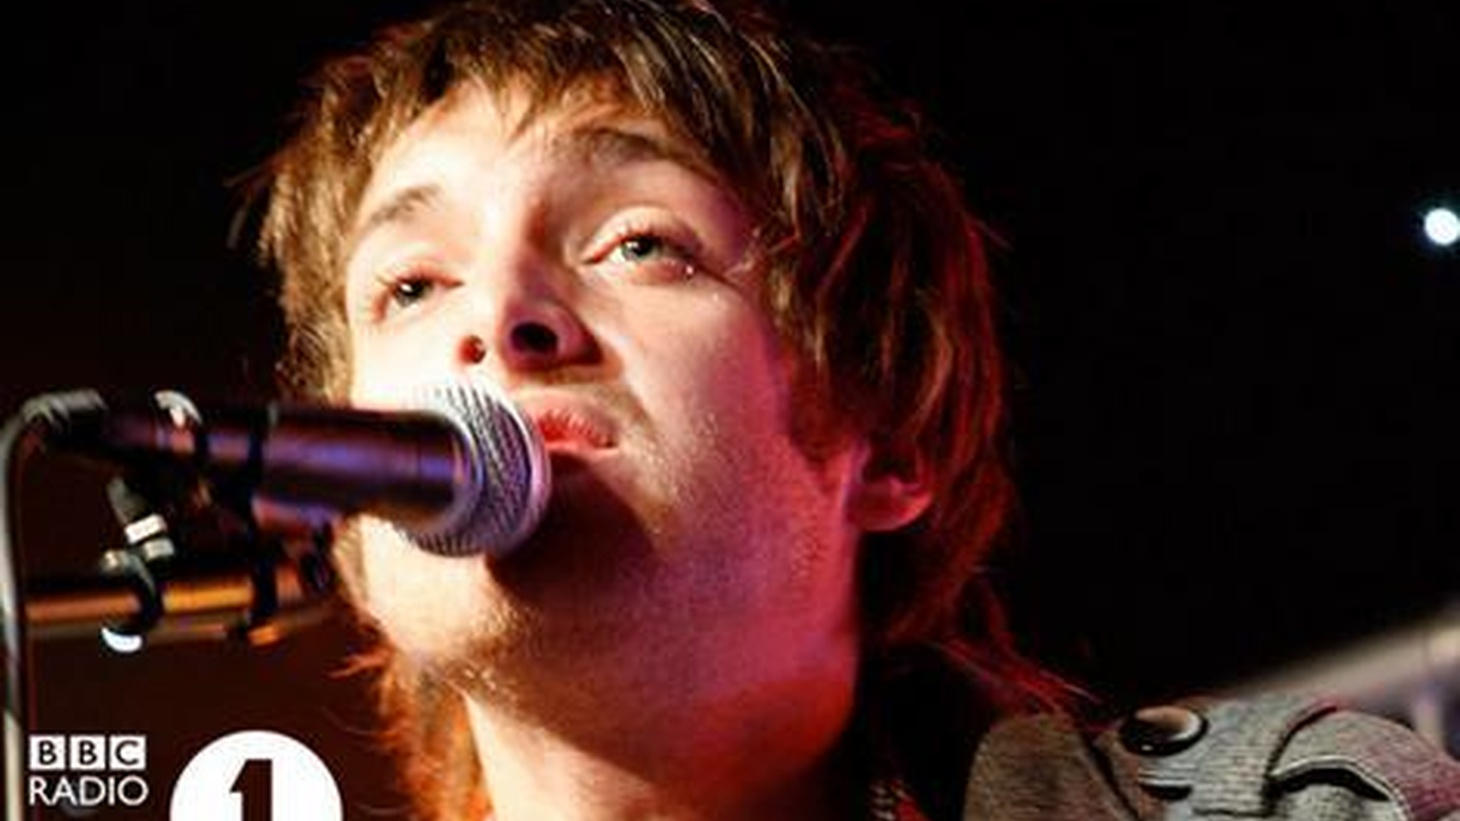 Scottish singer-songwriter Paolo Nutini brings to the air a live performance of songs from his second full-length release, Sunny Side Up, featuring exclusive collaborations with New Orleans' Preservation Hall Jazz Band.